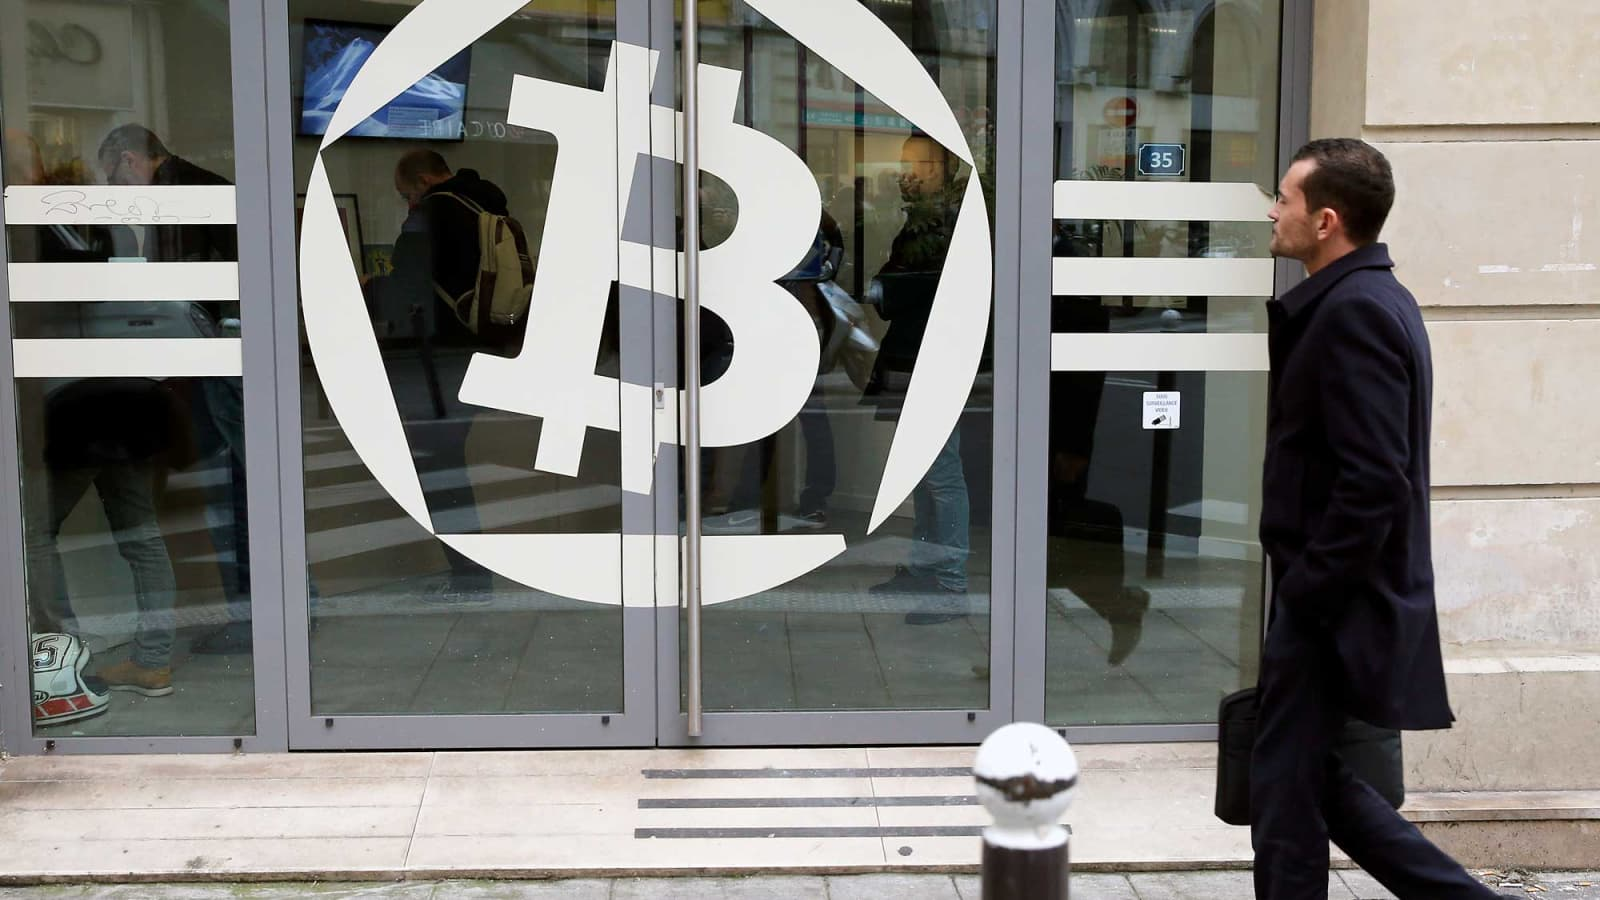 online trading companies in canada merrill lynch memo about bitcoin investment trust